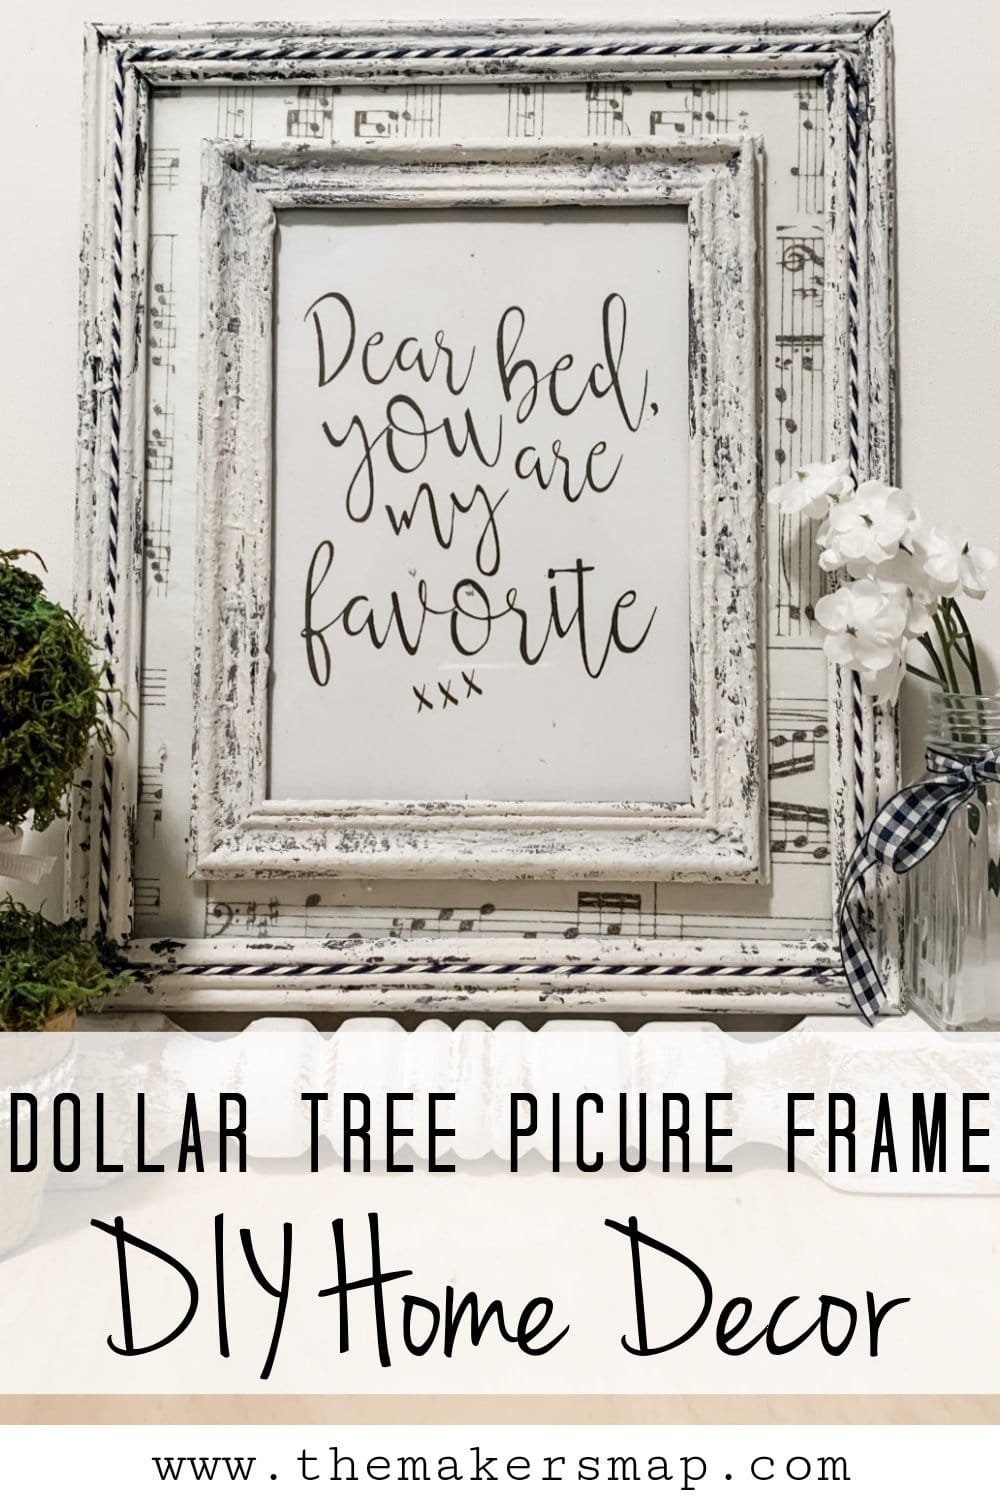 Dollar Tree Picture Frame DIY Home Decor using spackling